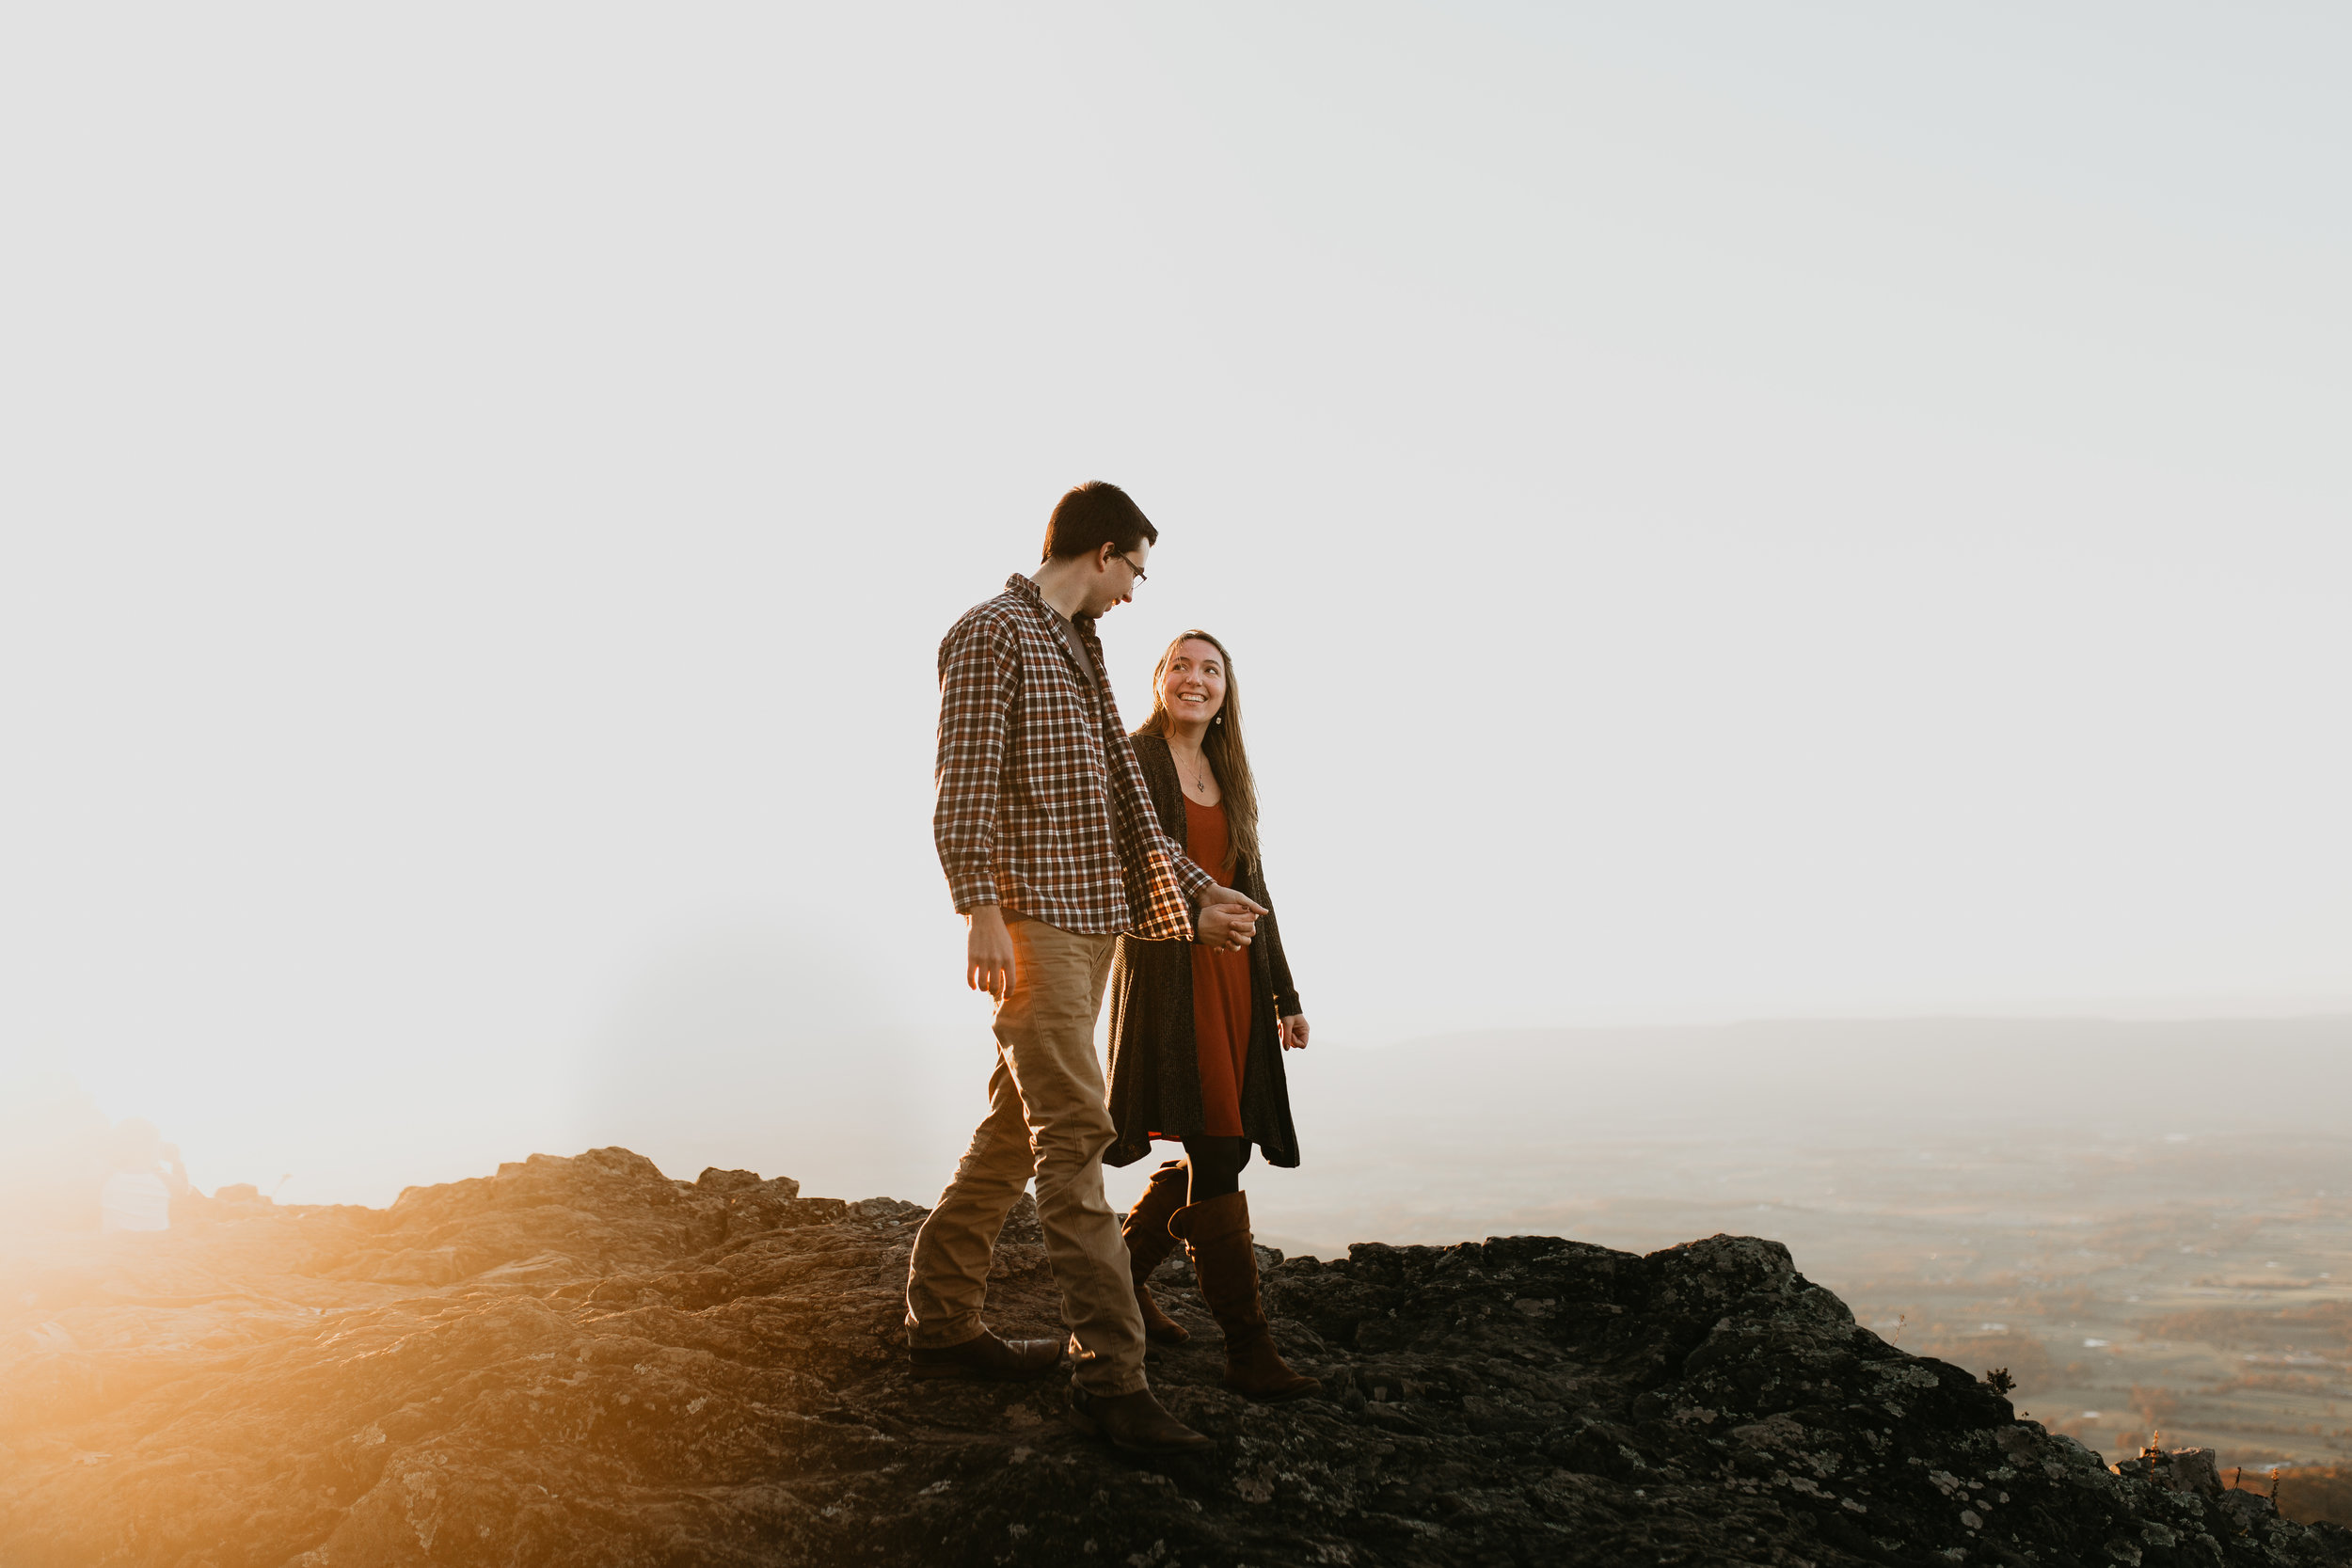 nicole-daacke-photography-shenandoah-national-park-adventure-engagement-session-with-fall-foliage-shenandoah-elopement-photographer-engagement-photos-in-virginia-charlottesville-national-park-adventure-elopement-photographer-3860.jpg